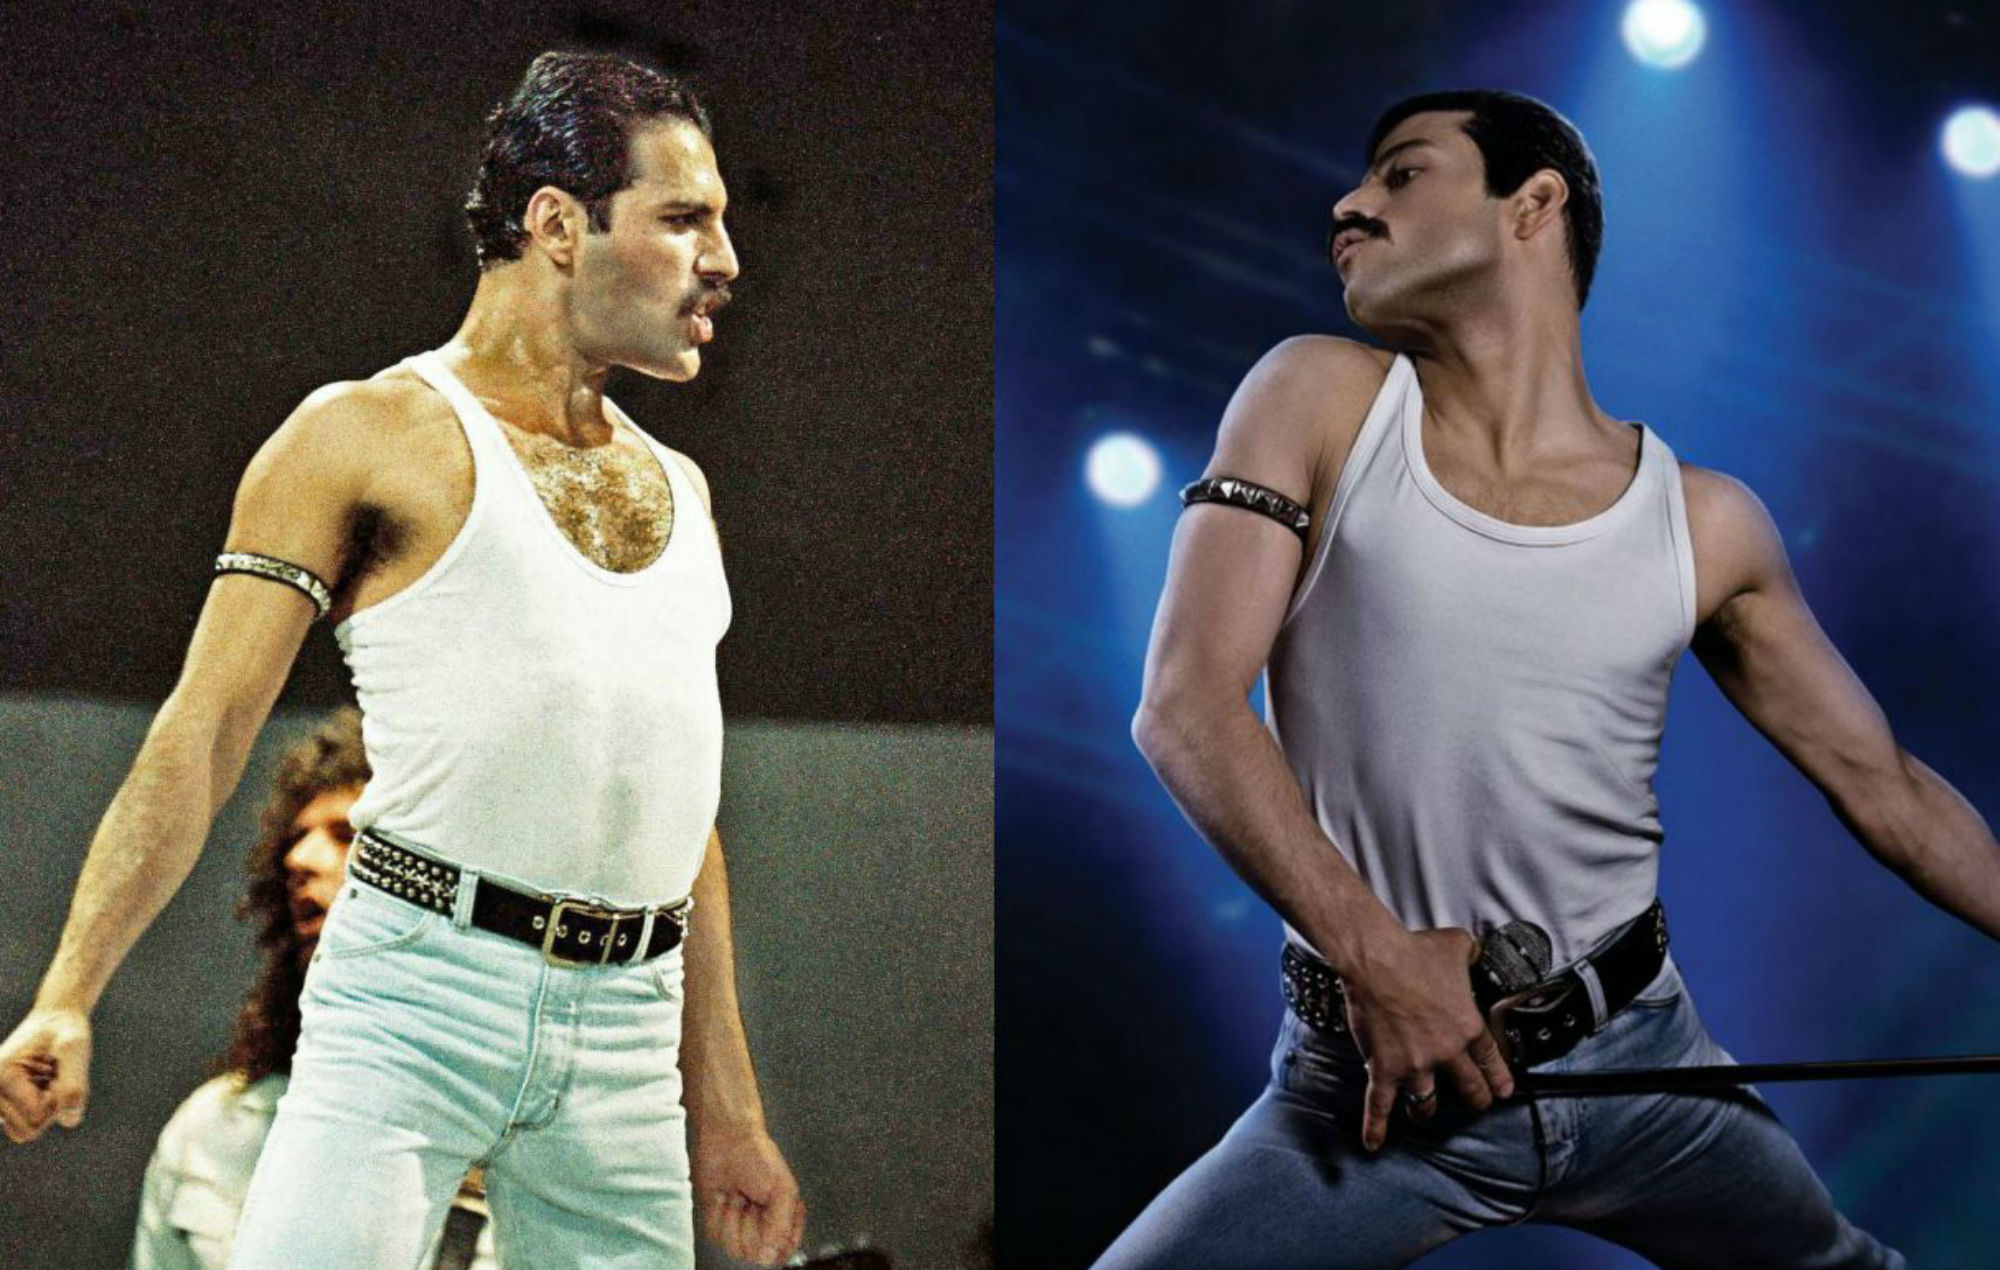 viral video shows how closely rami malek mimics freddie mercury s live aid performance in bohemian rhapsody closely rami malek mimics freddie